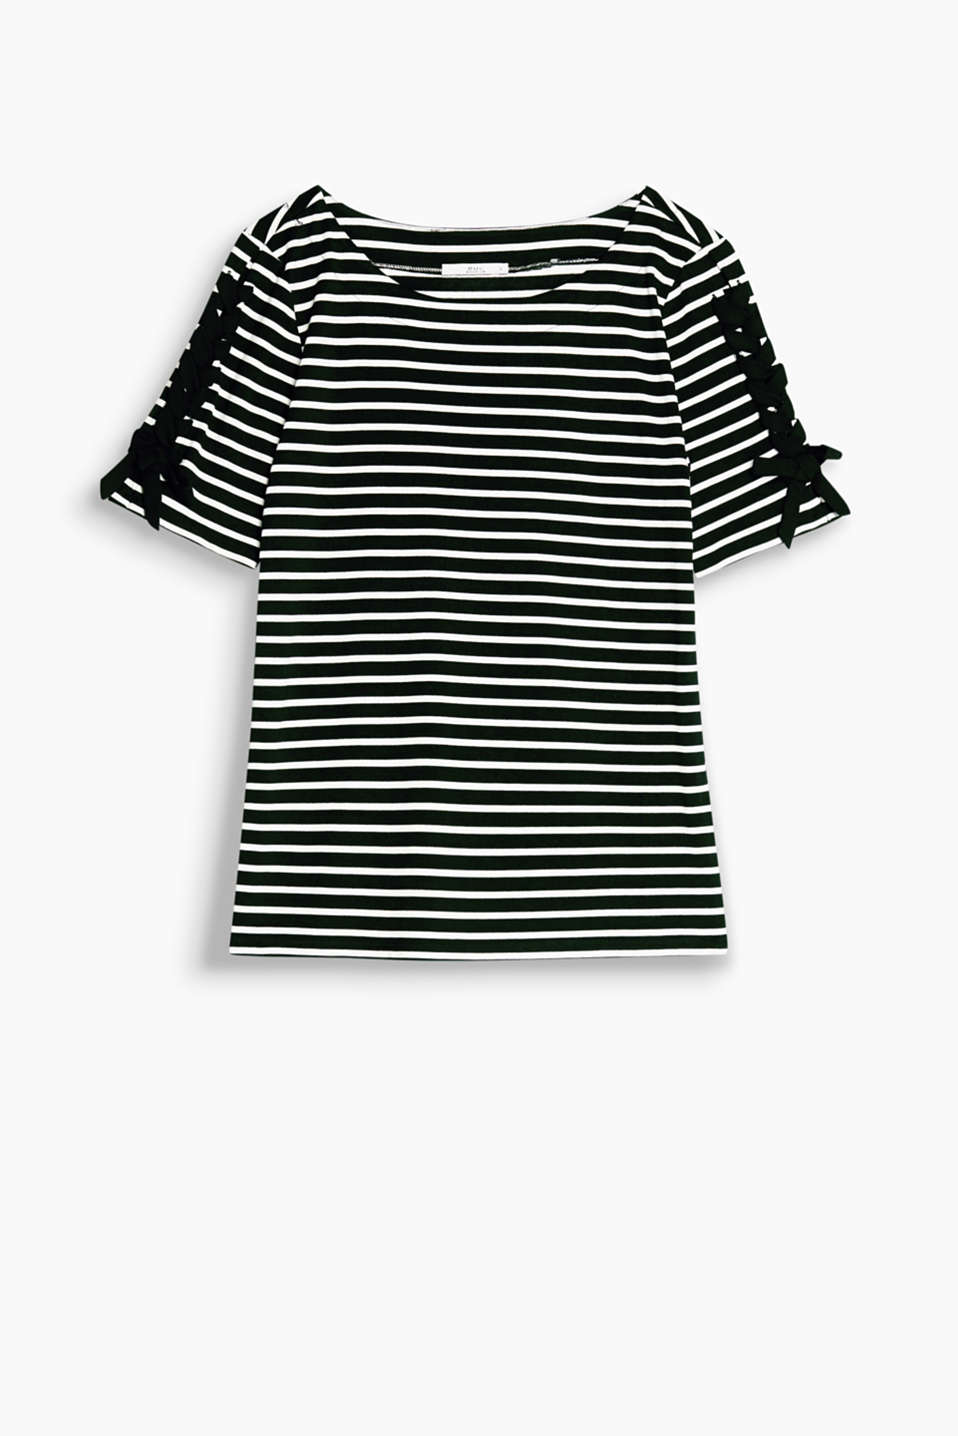 A perfect eye for detail: this soft striped top delights with the trendy lace-up effect on its sleeves.